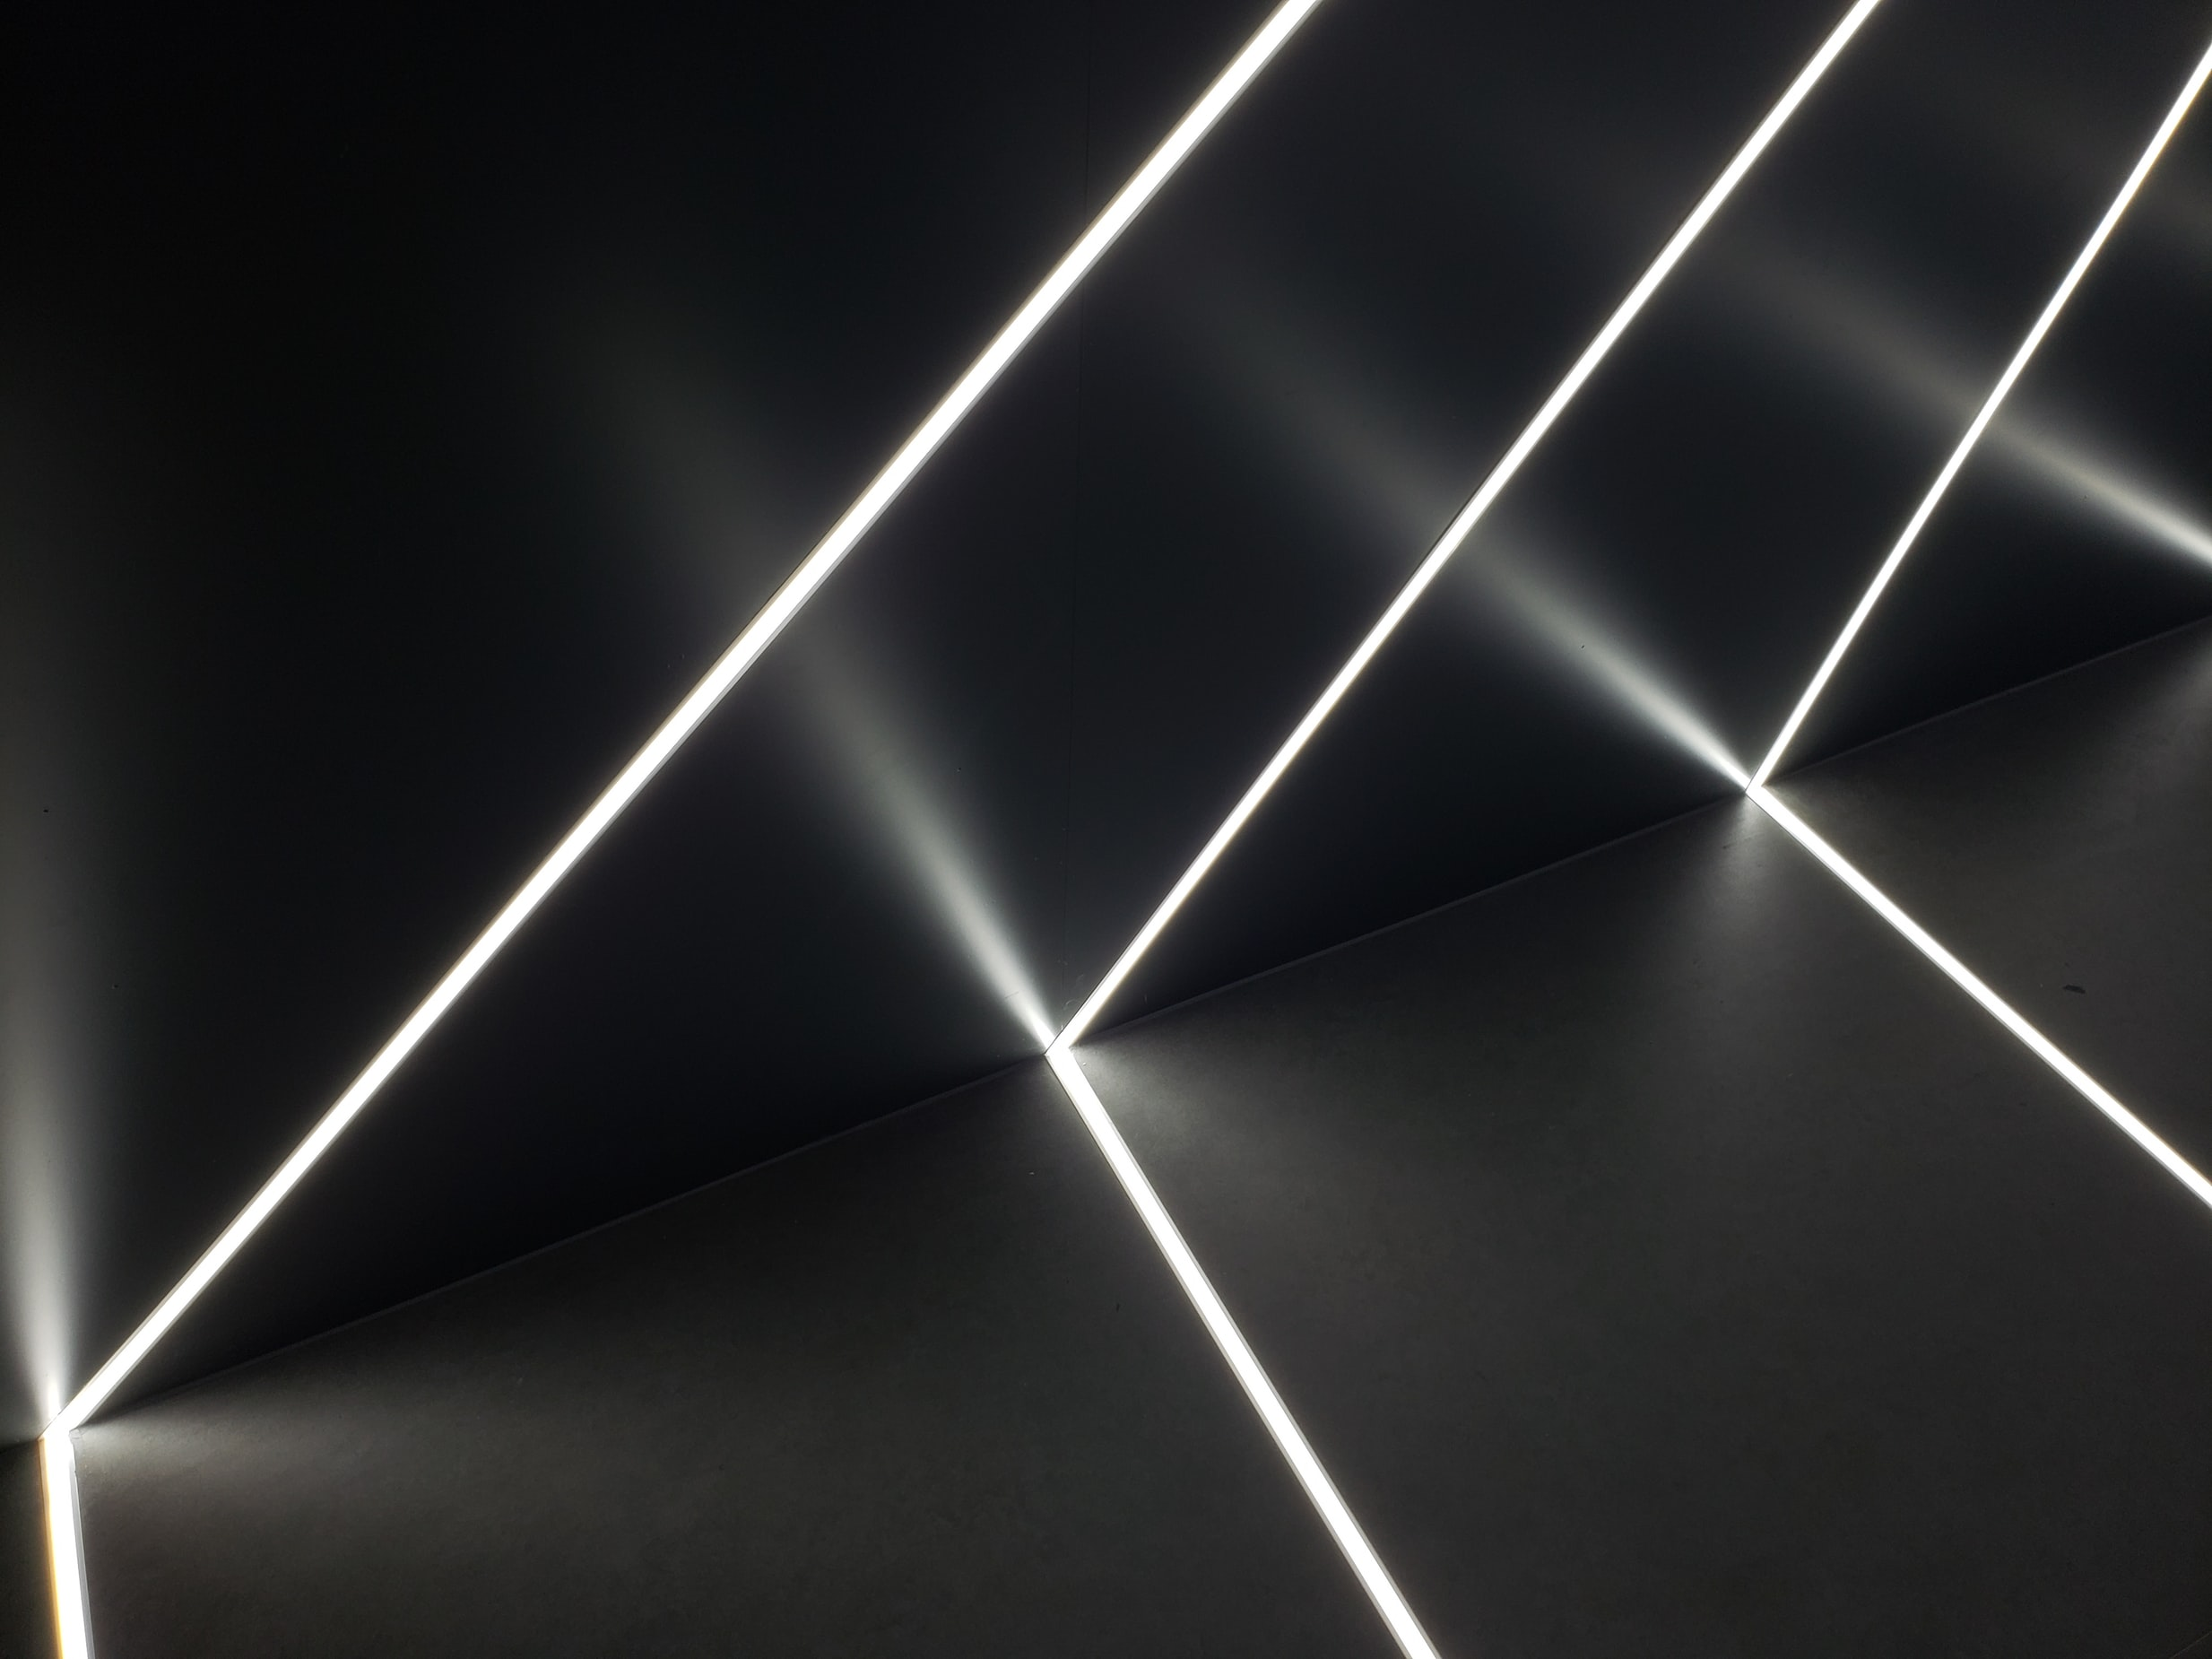 LED ribbons embedded in black wall